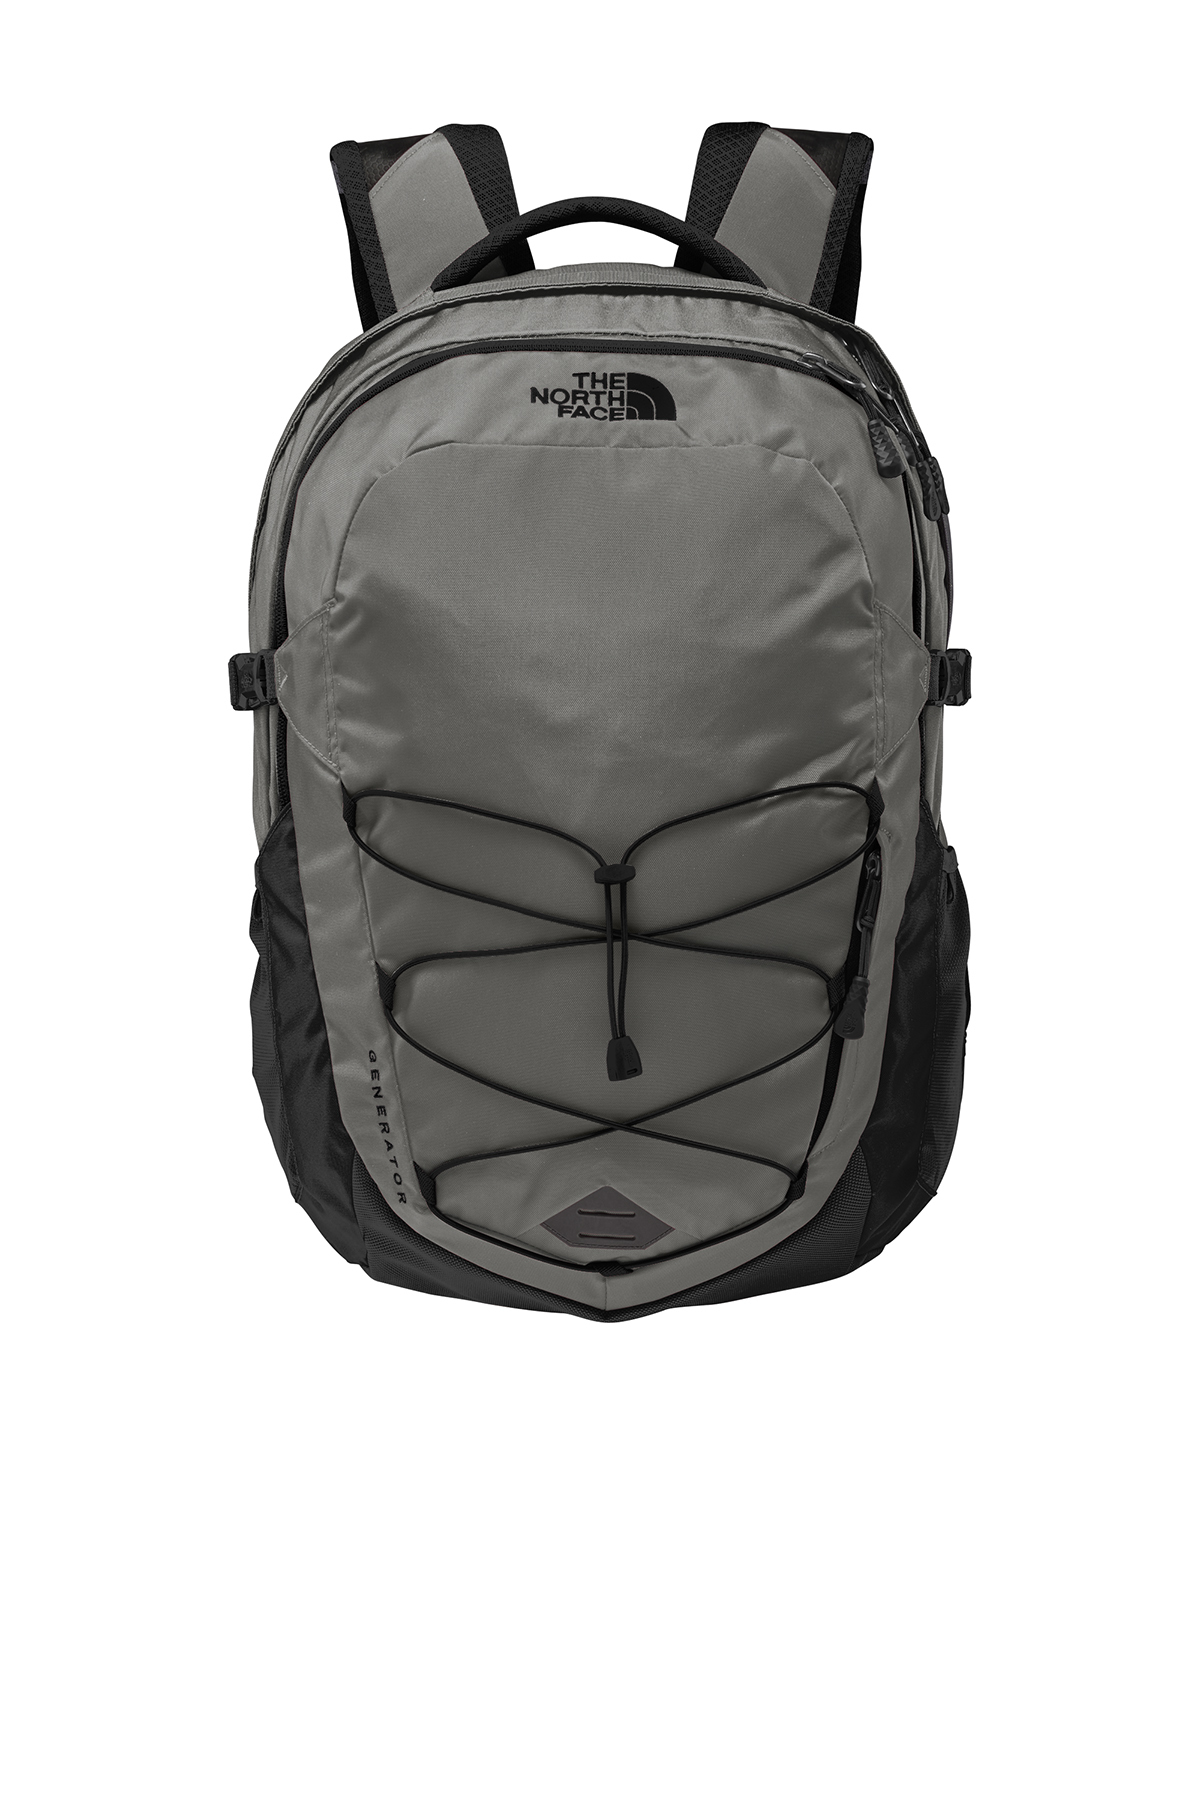 Water Resistant North Face Backpack- Fenix Toulouse Handball b41f52d689380